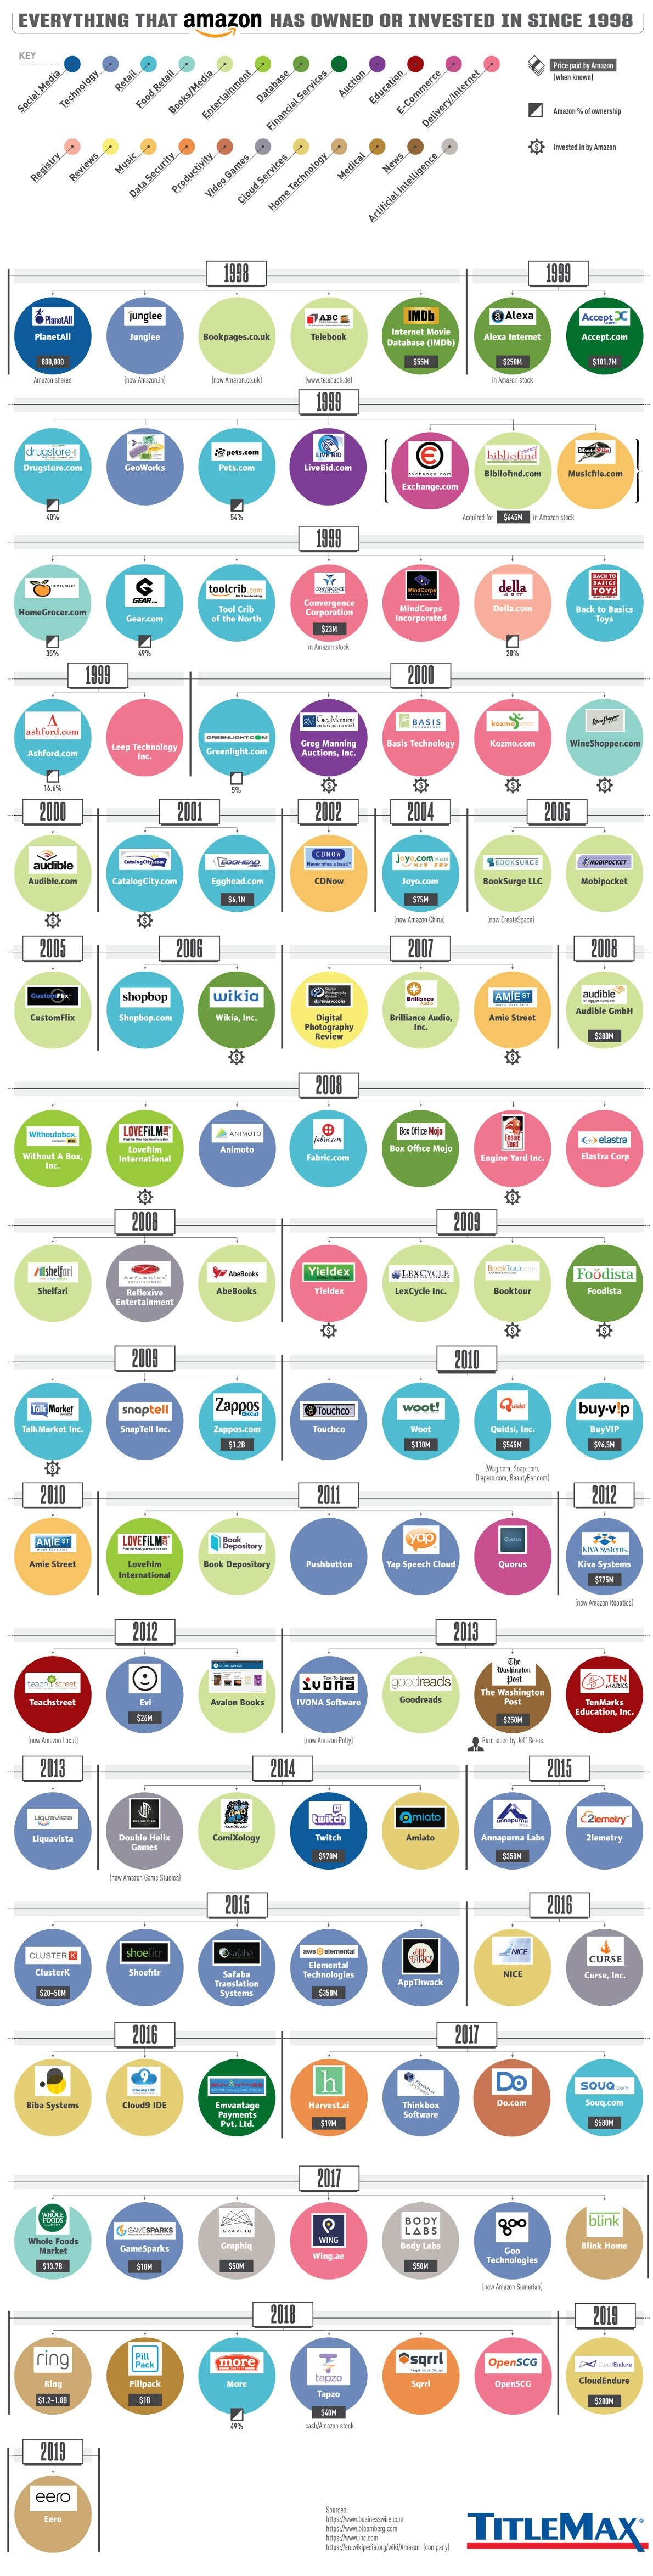 Everything That Amazon Has Owned Or Invested In Since 1998 #infographic